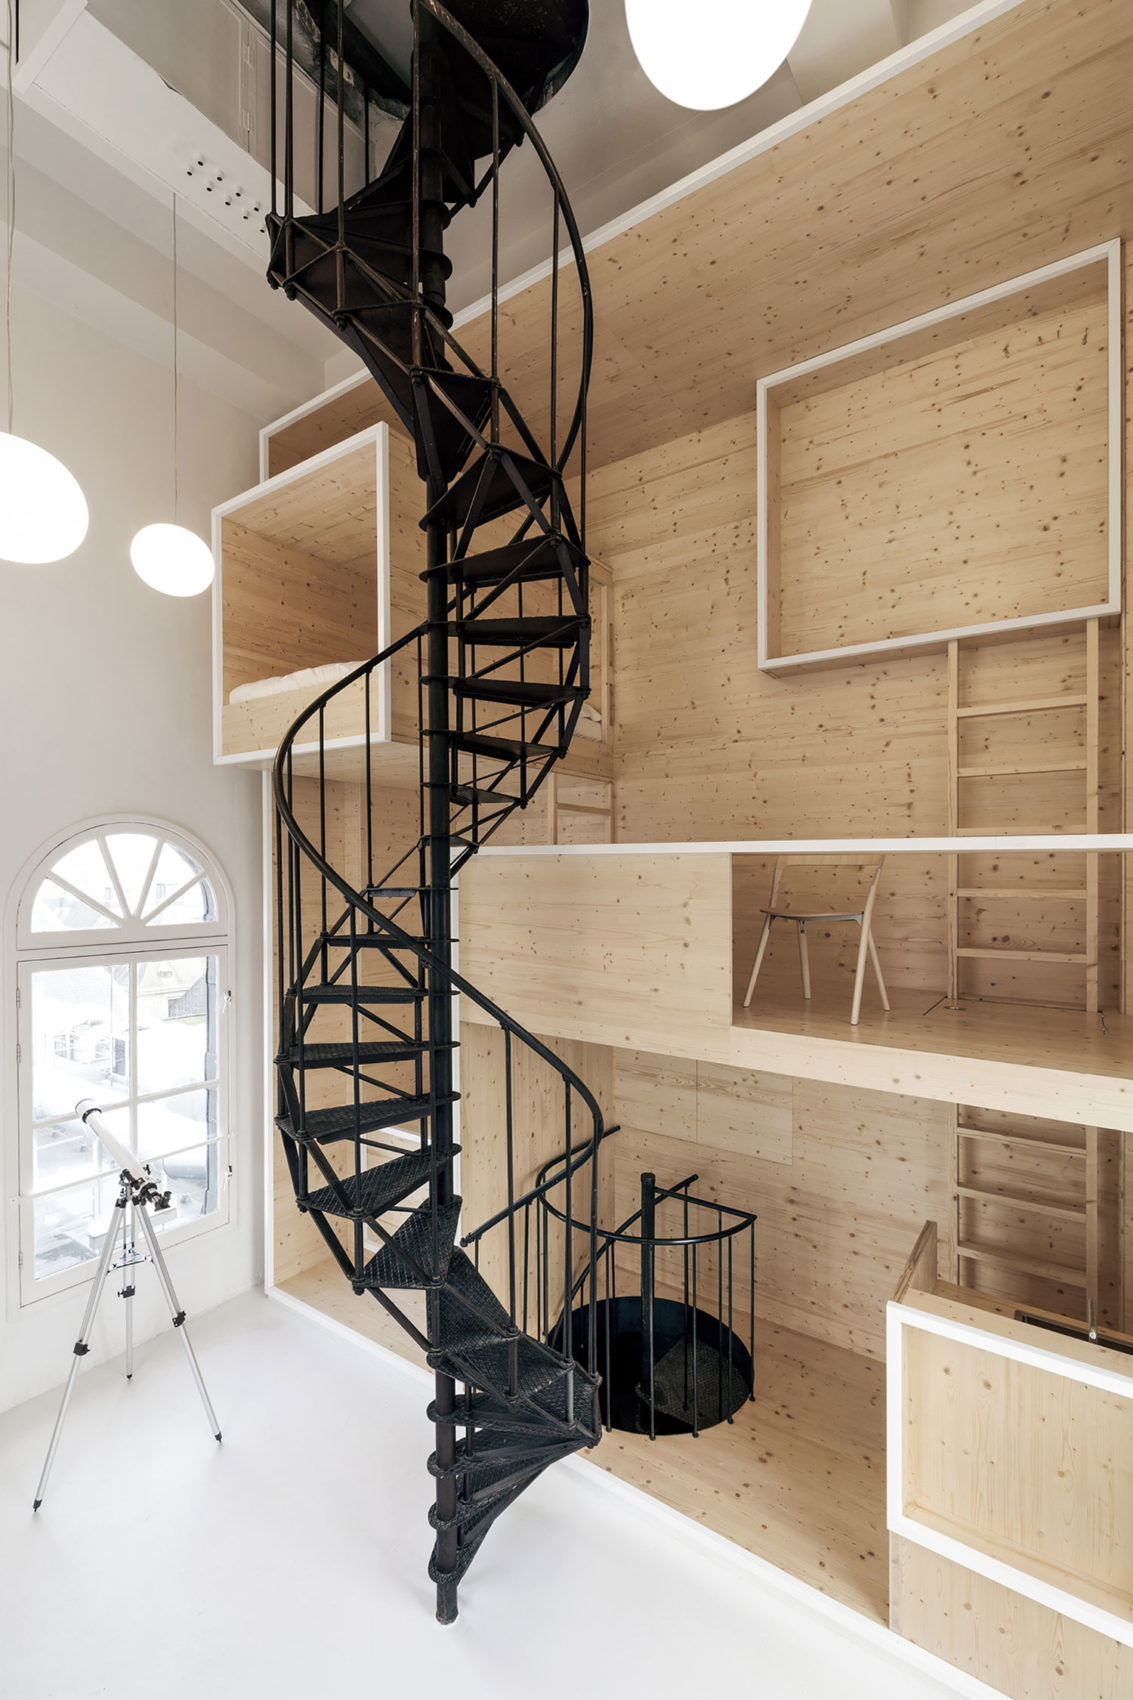 Culture 01 by i29 interior architects (3)